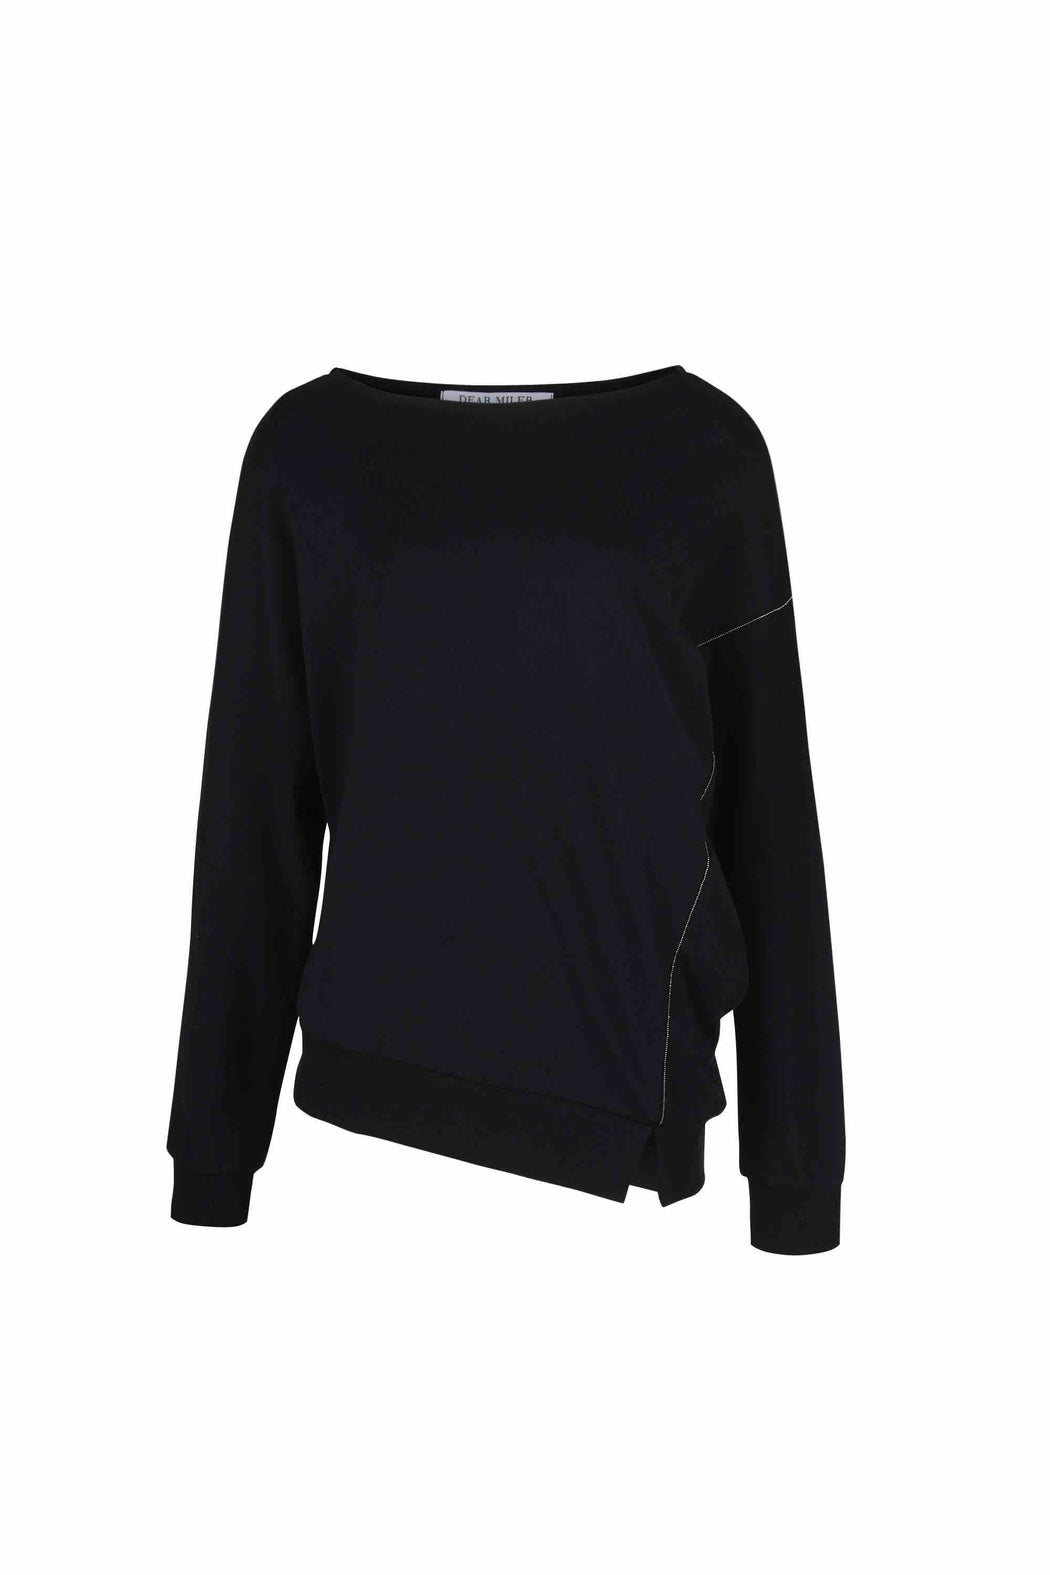 Front view of women Long Sleeve T-Shirt, Asymmetric hem beading detail made with Organic Cotton in Black